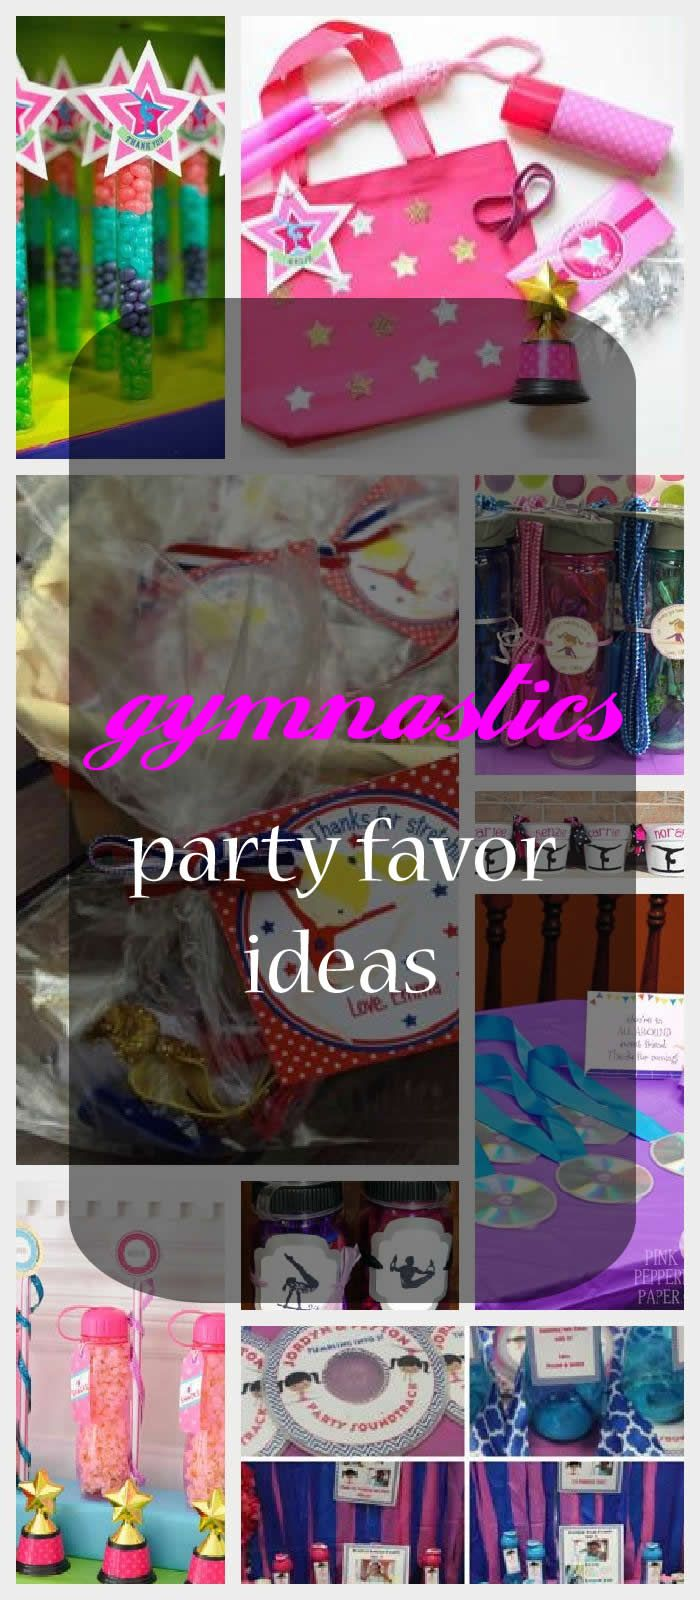 Find fun gymnastics party favor ideas for you child's next birthday party.